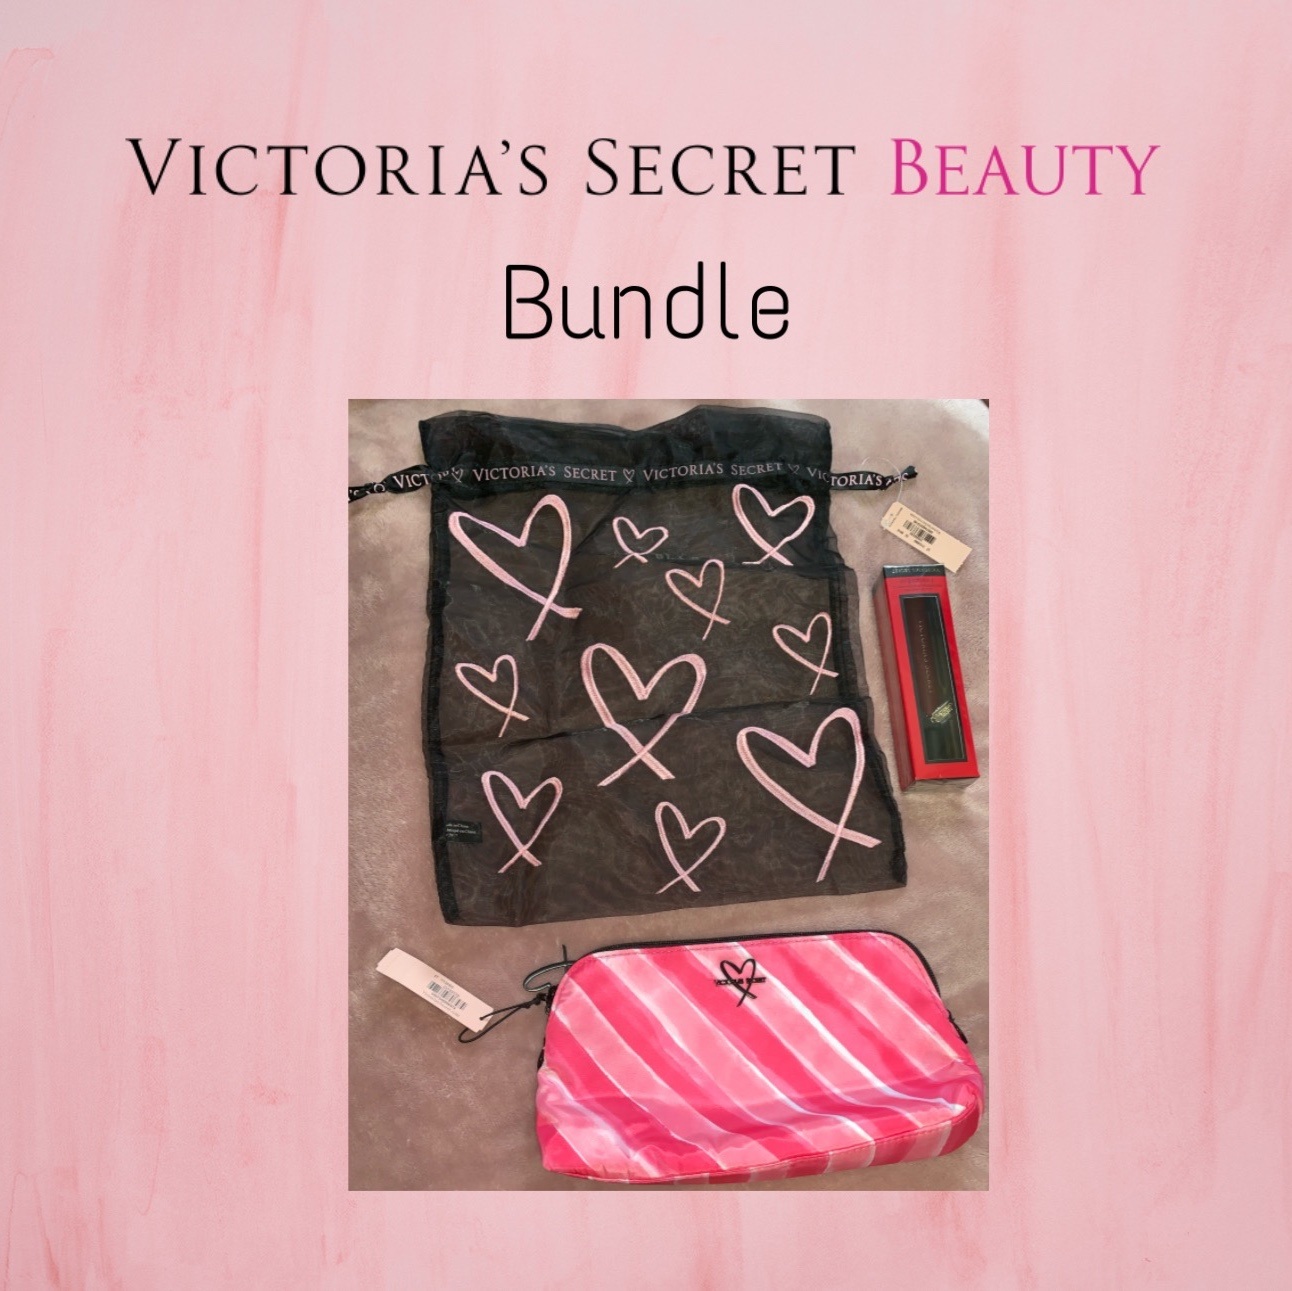 05541d9e403c6 Victoria's Secret Beauty Bundle ✨All New✨ Very Sexy... - Depop